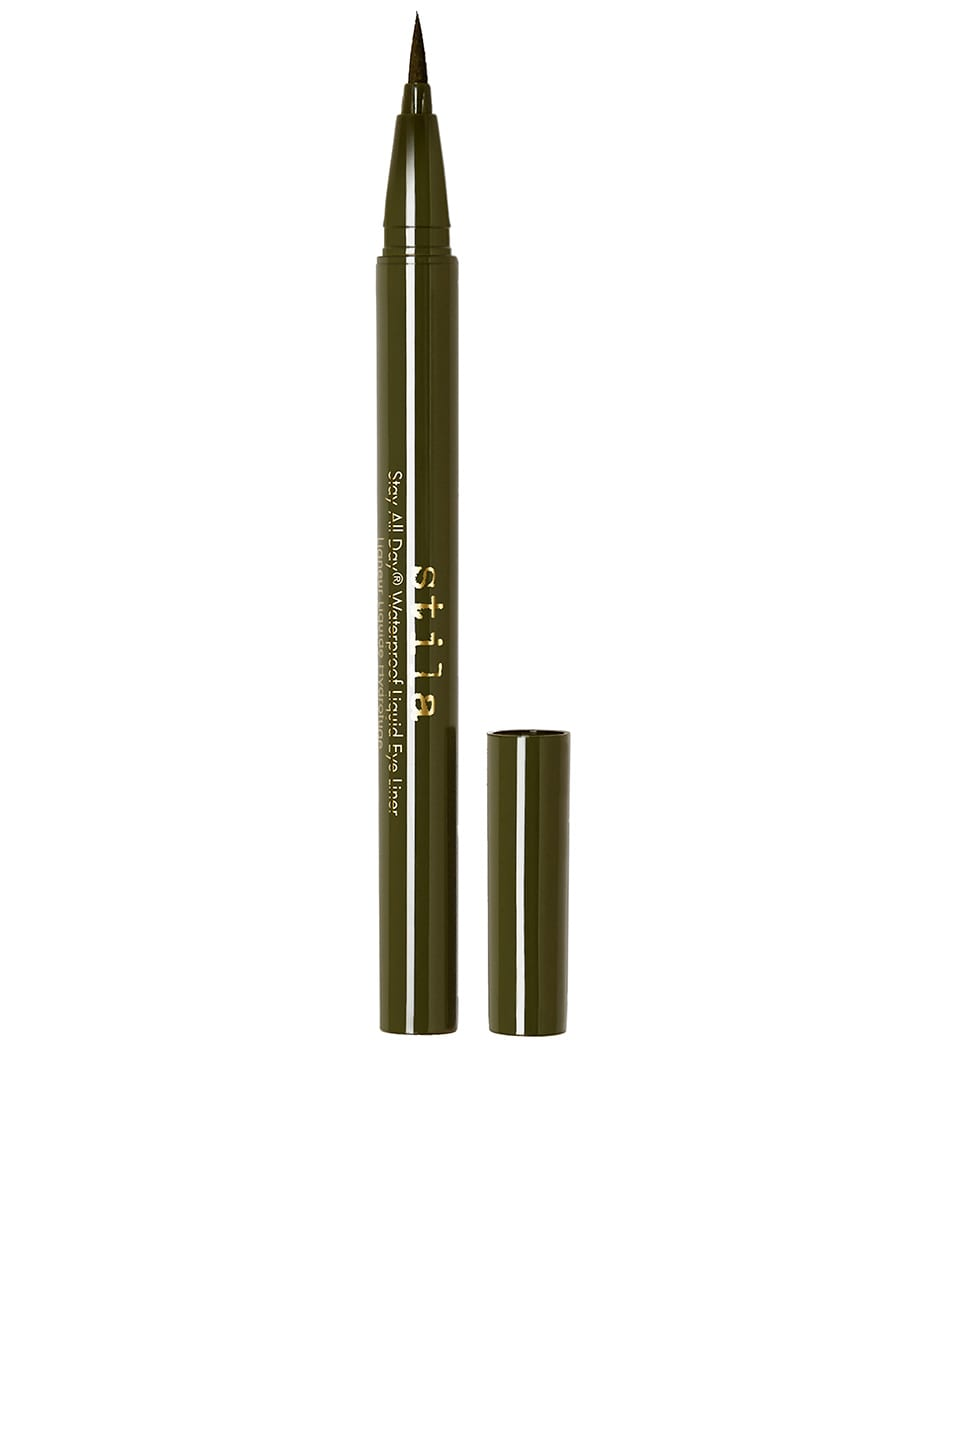 Stila Stay All Day Waterproof Liquid Eye Liner en Olive